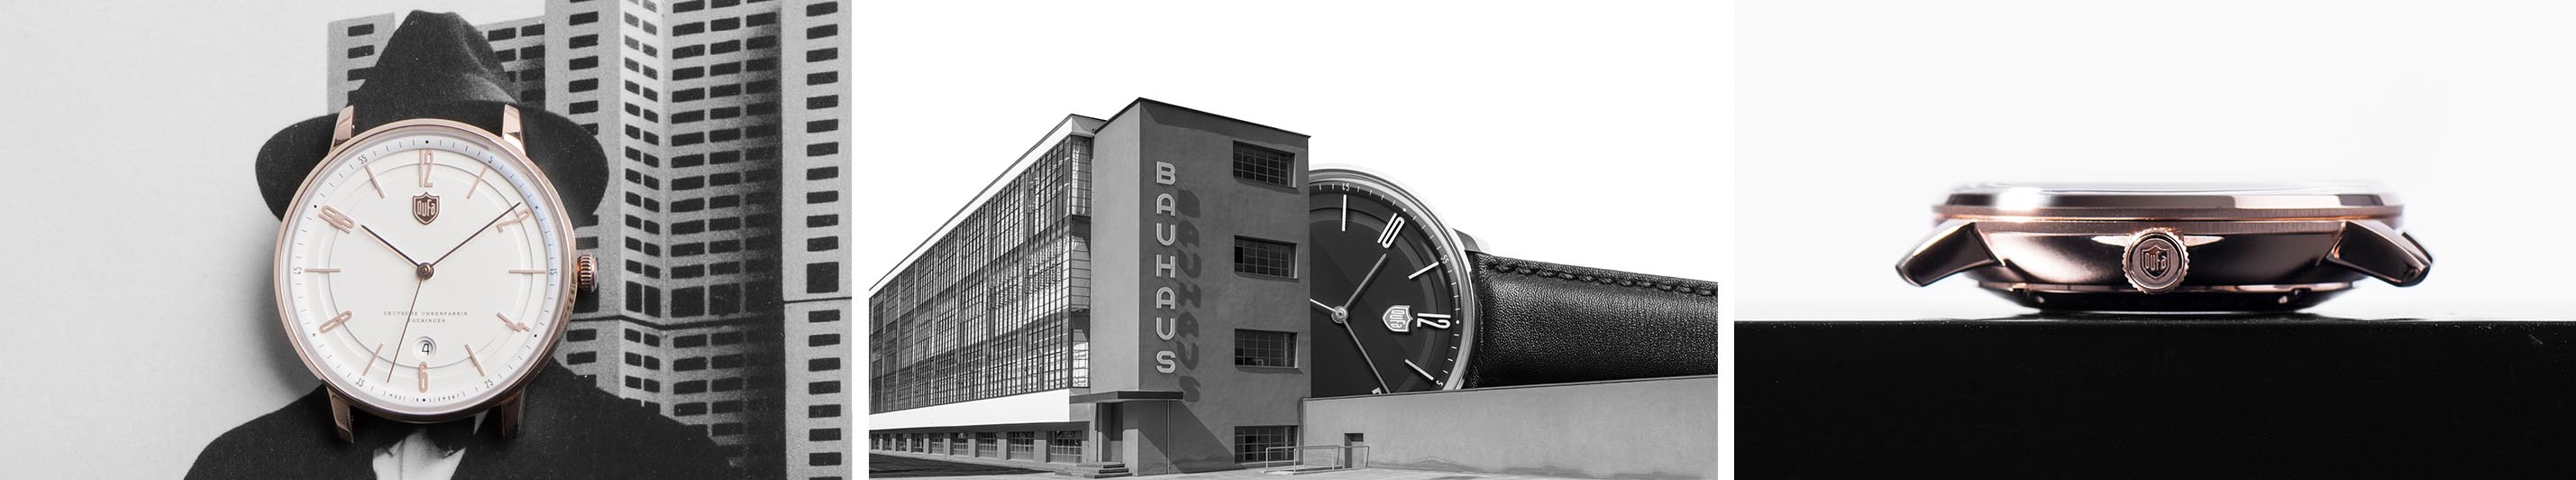 DuFa Bauhaus design watches inspiration